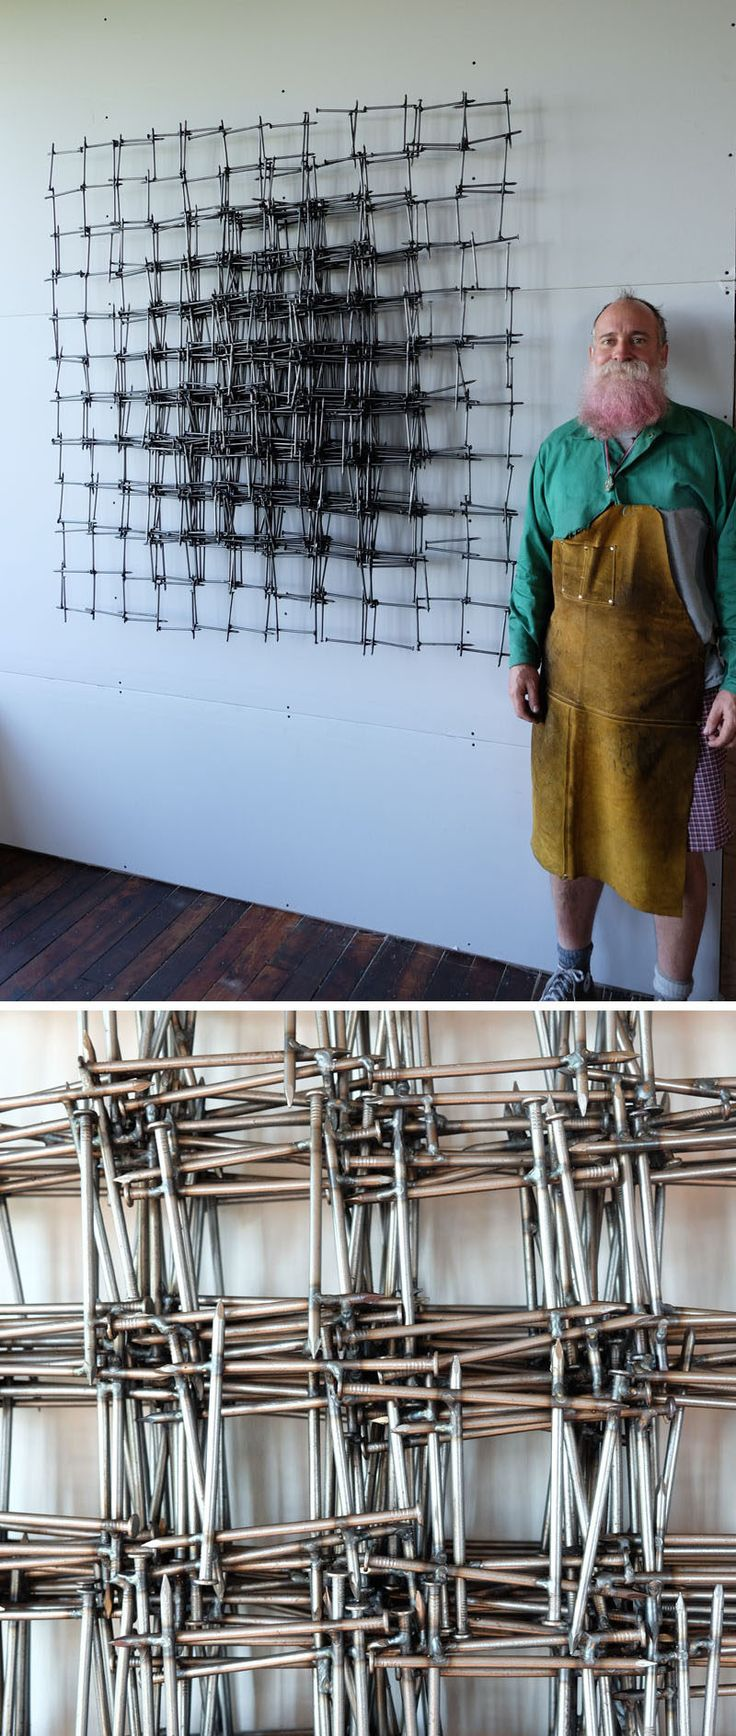 This sculpture by John Bisbee is made entirely from steel nails. Working in patterns and creating repetitions, Bisbee creates pieces that emphasize the complex relationship between the organic and geometric worlds.